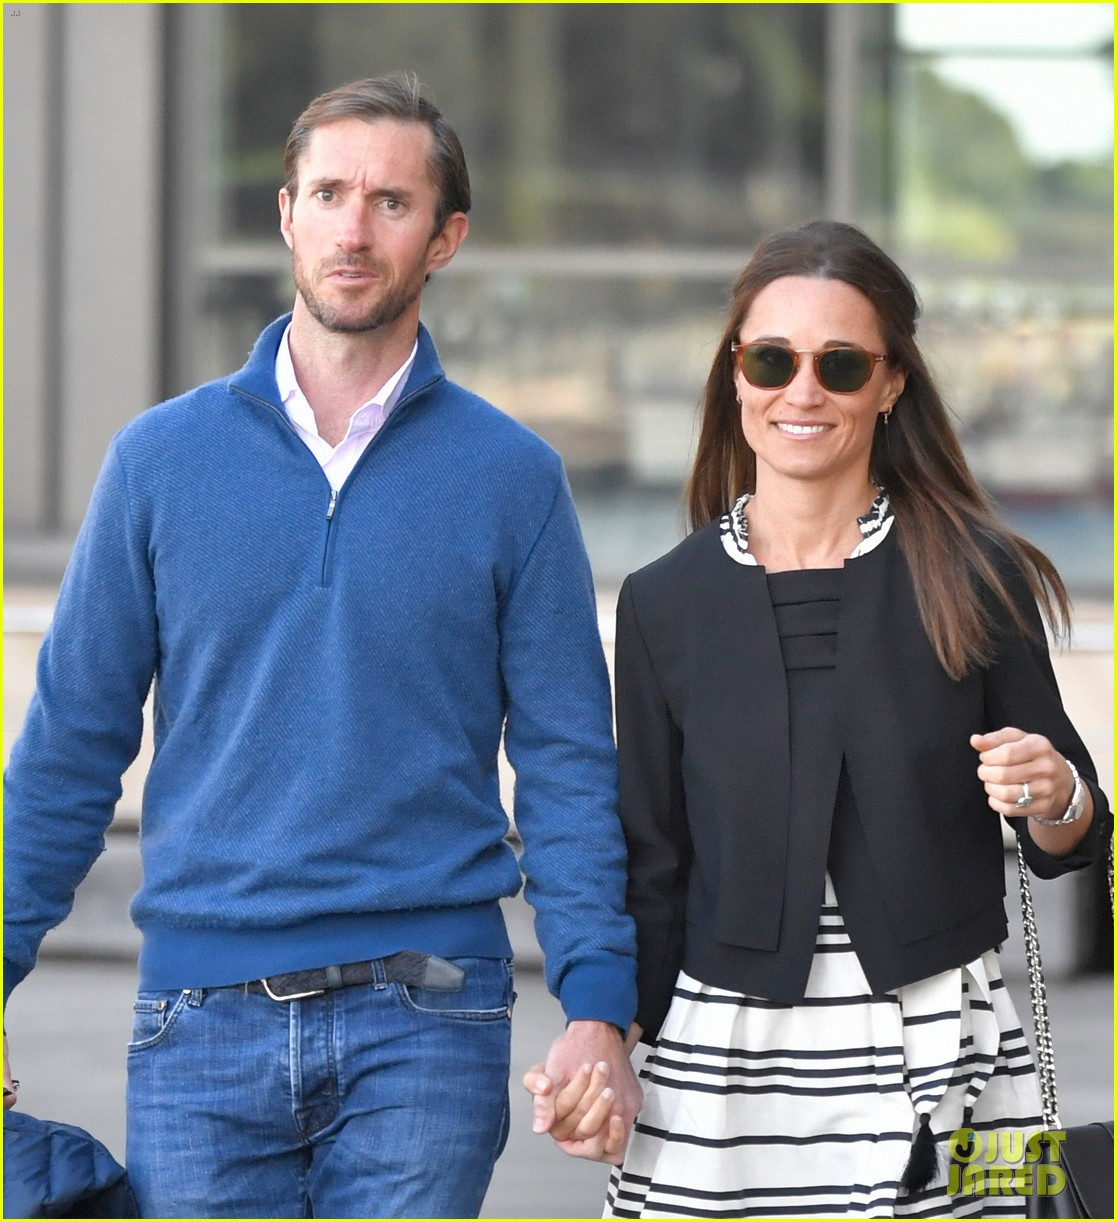 pippa dating matthews The duchess of cambridge, kate middleton was one of the first to find out about  pippa middleton's pregnancy and is said to be thrilled for her.